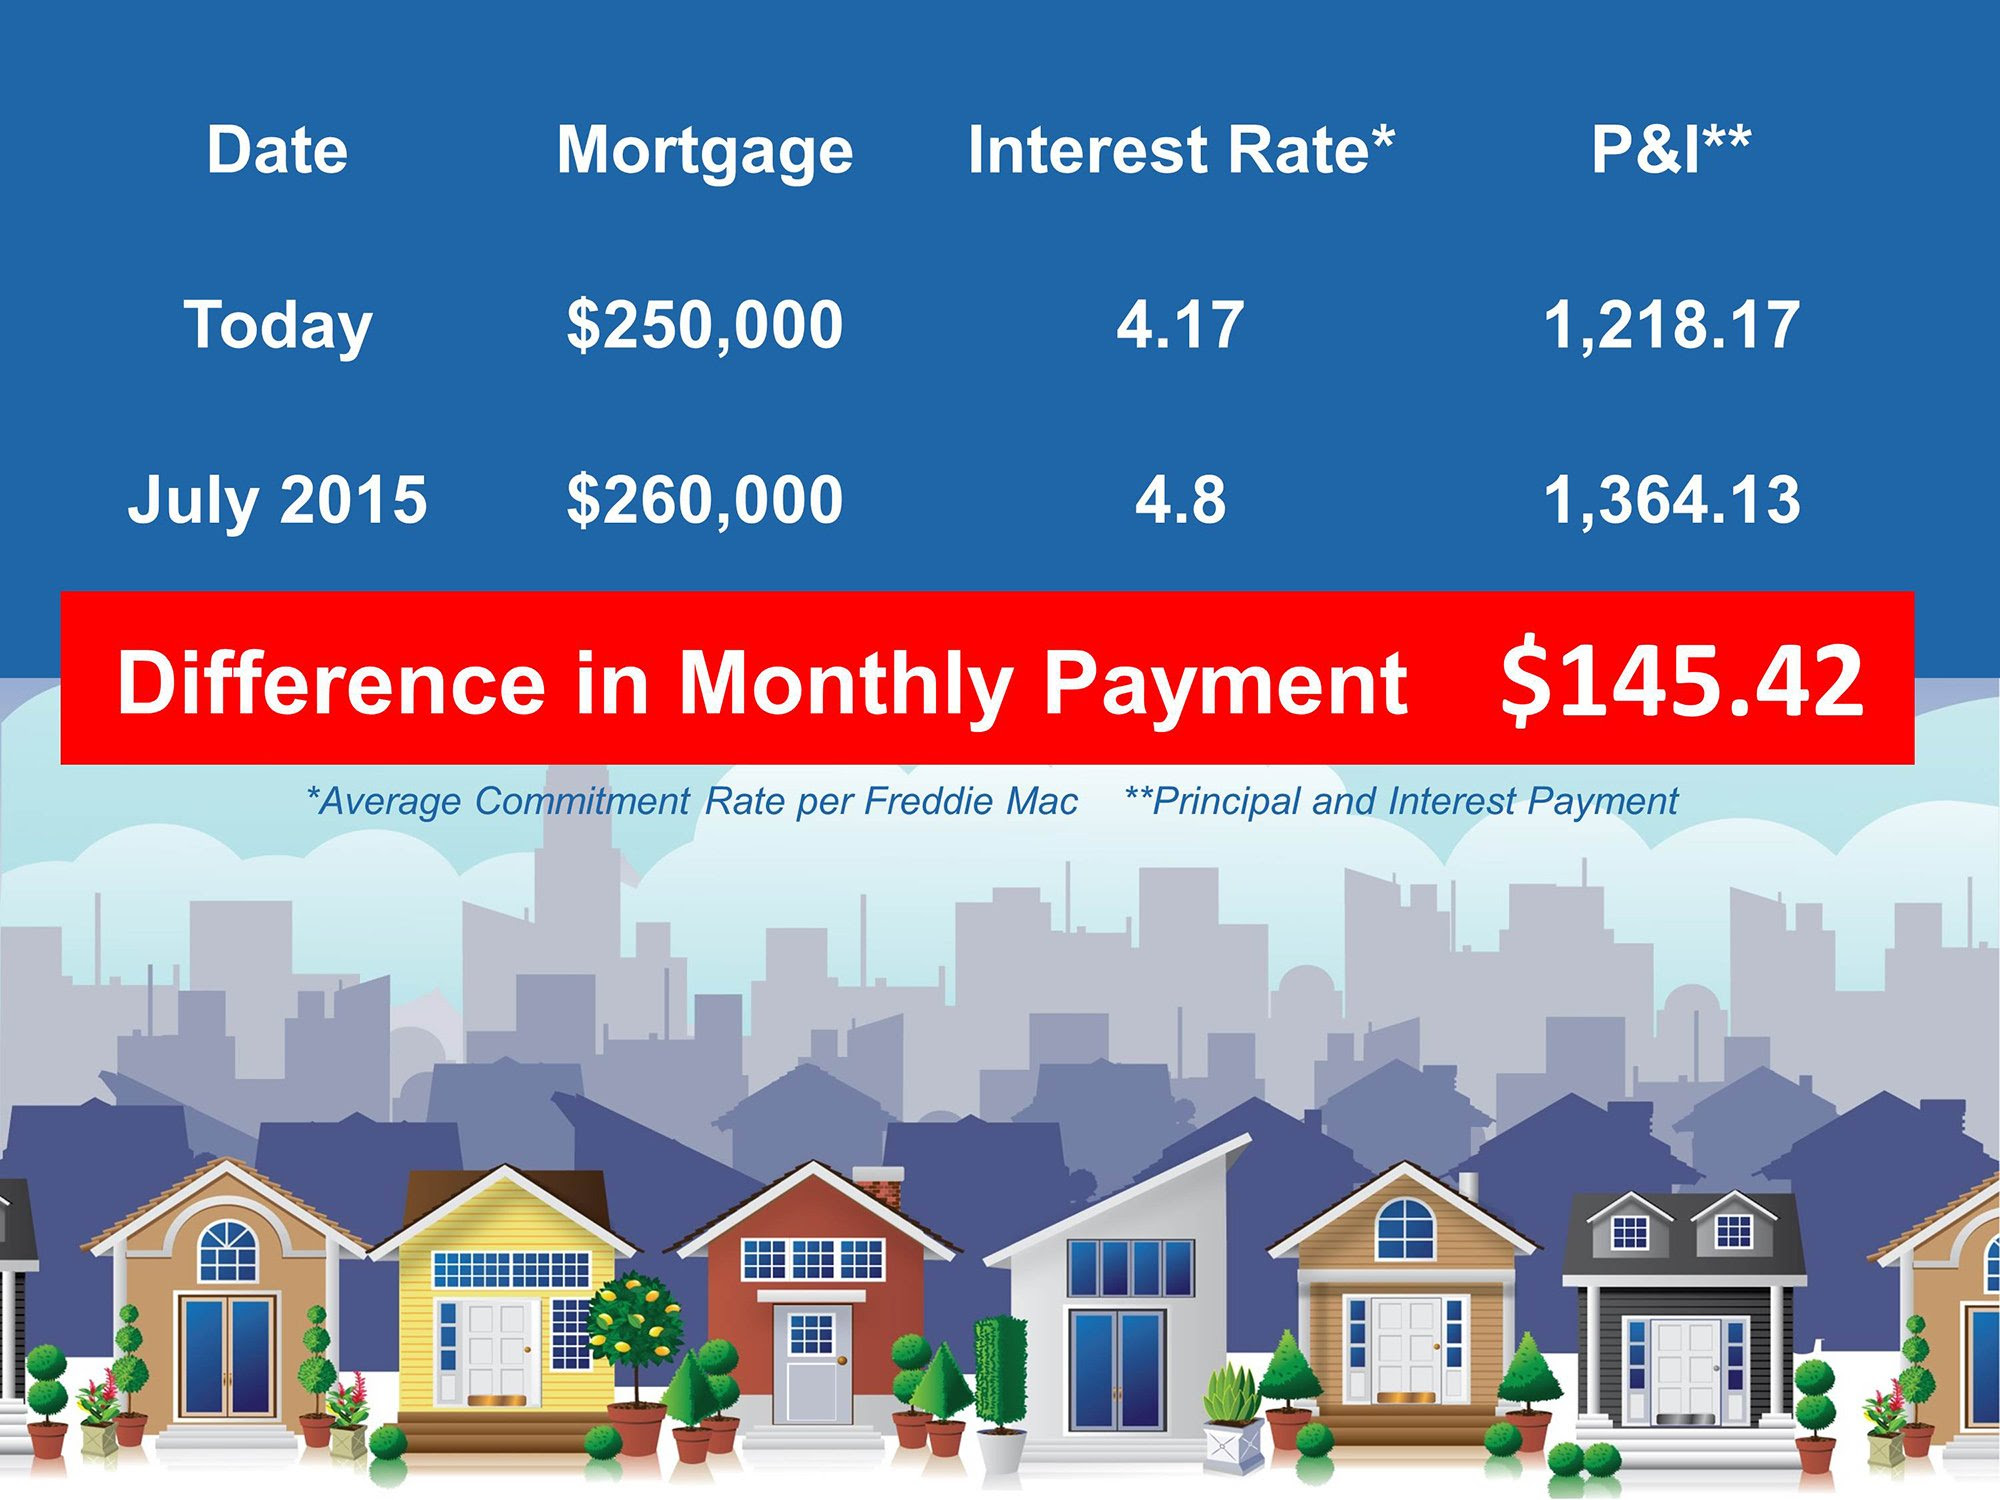 First Time Homebuyer's Cost of Waiting | Keeping Current Matters